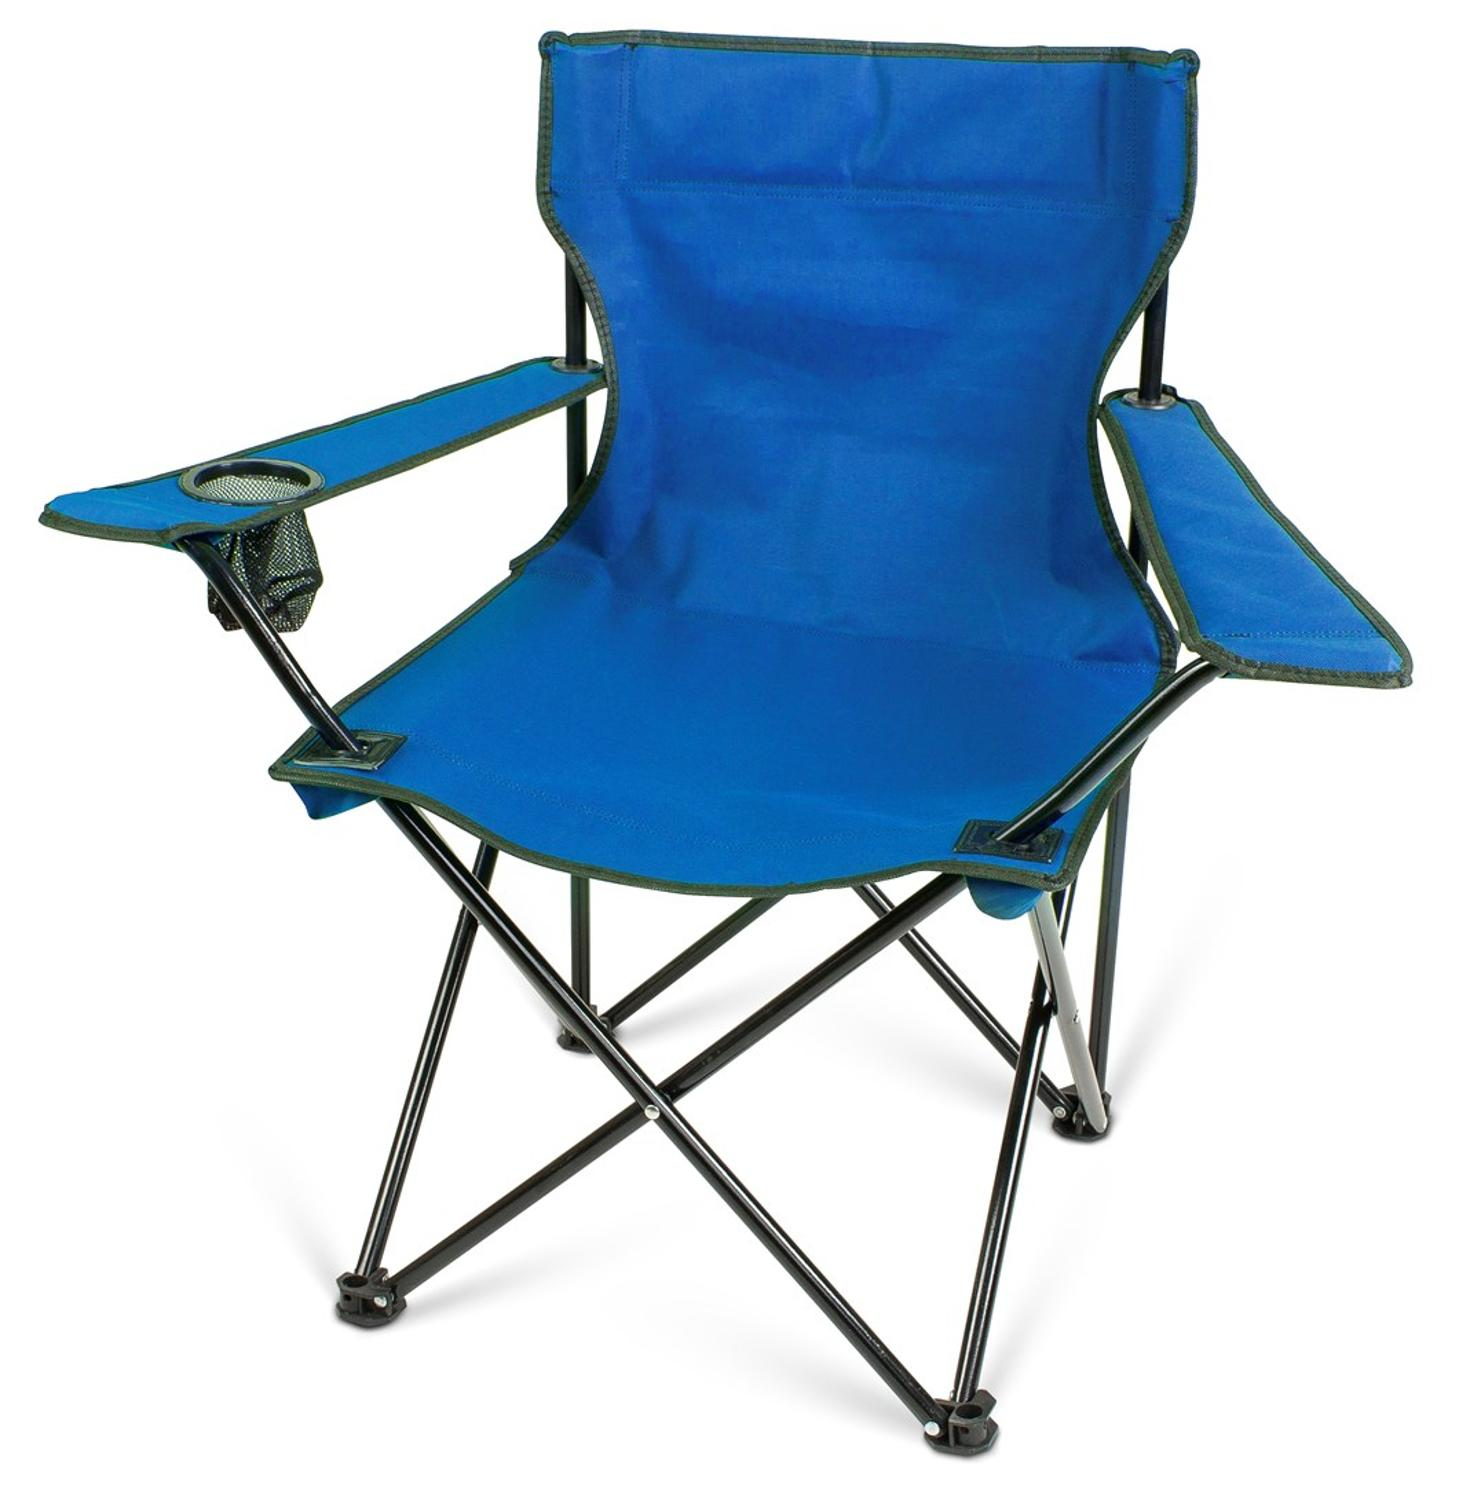 Travel Ultralight Folding Chair Outdoor Camping Chair Portable Beach Hiking Picnic Seat Fishing Tools Chair enlarge